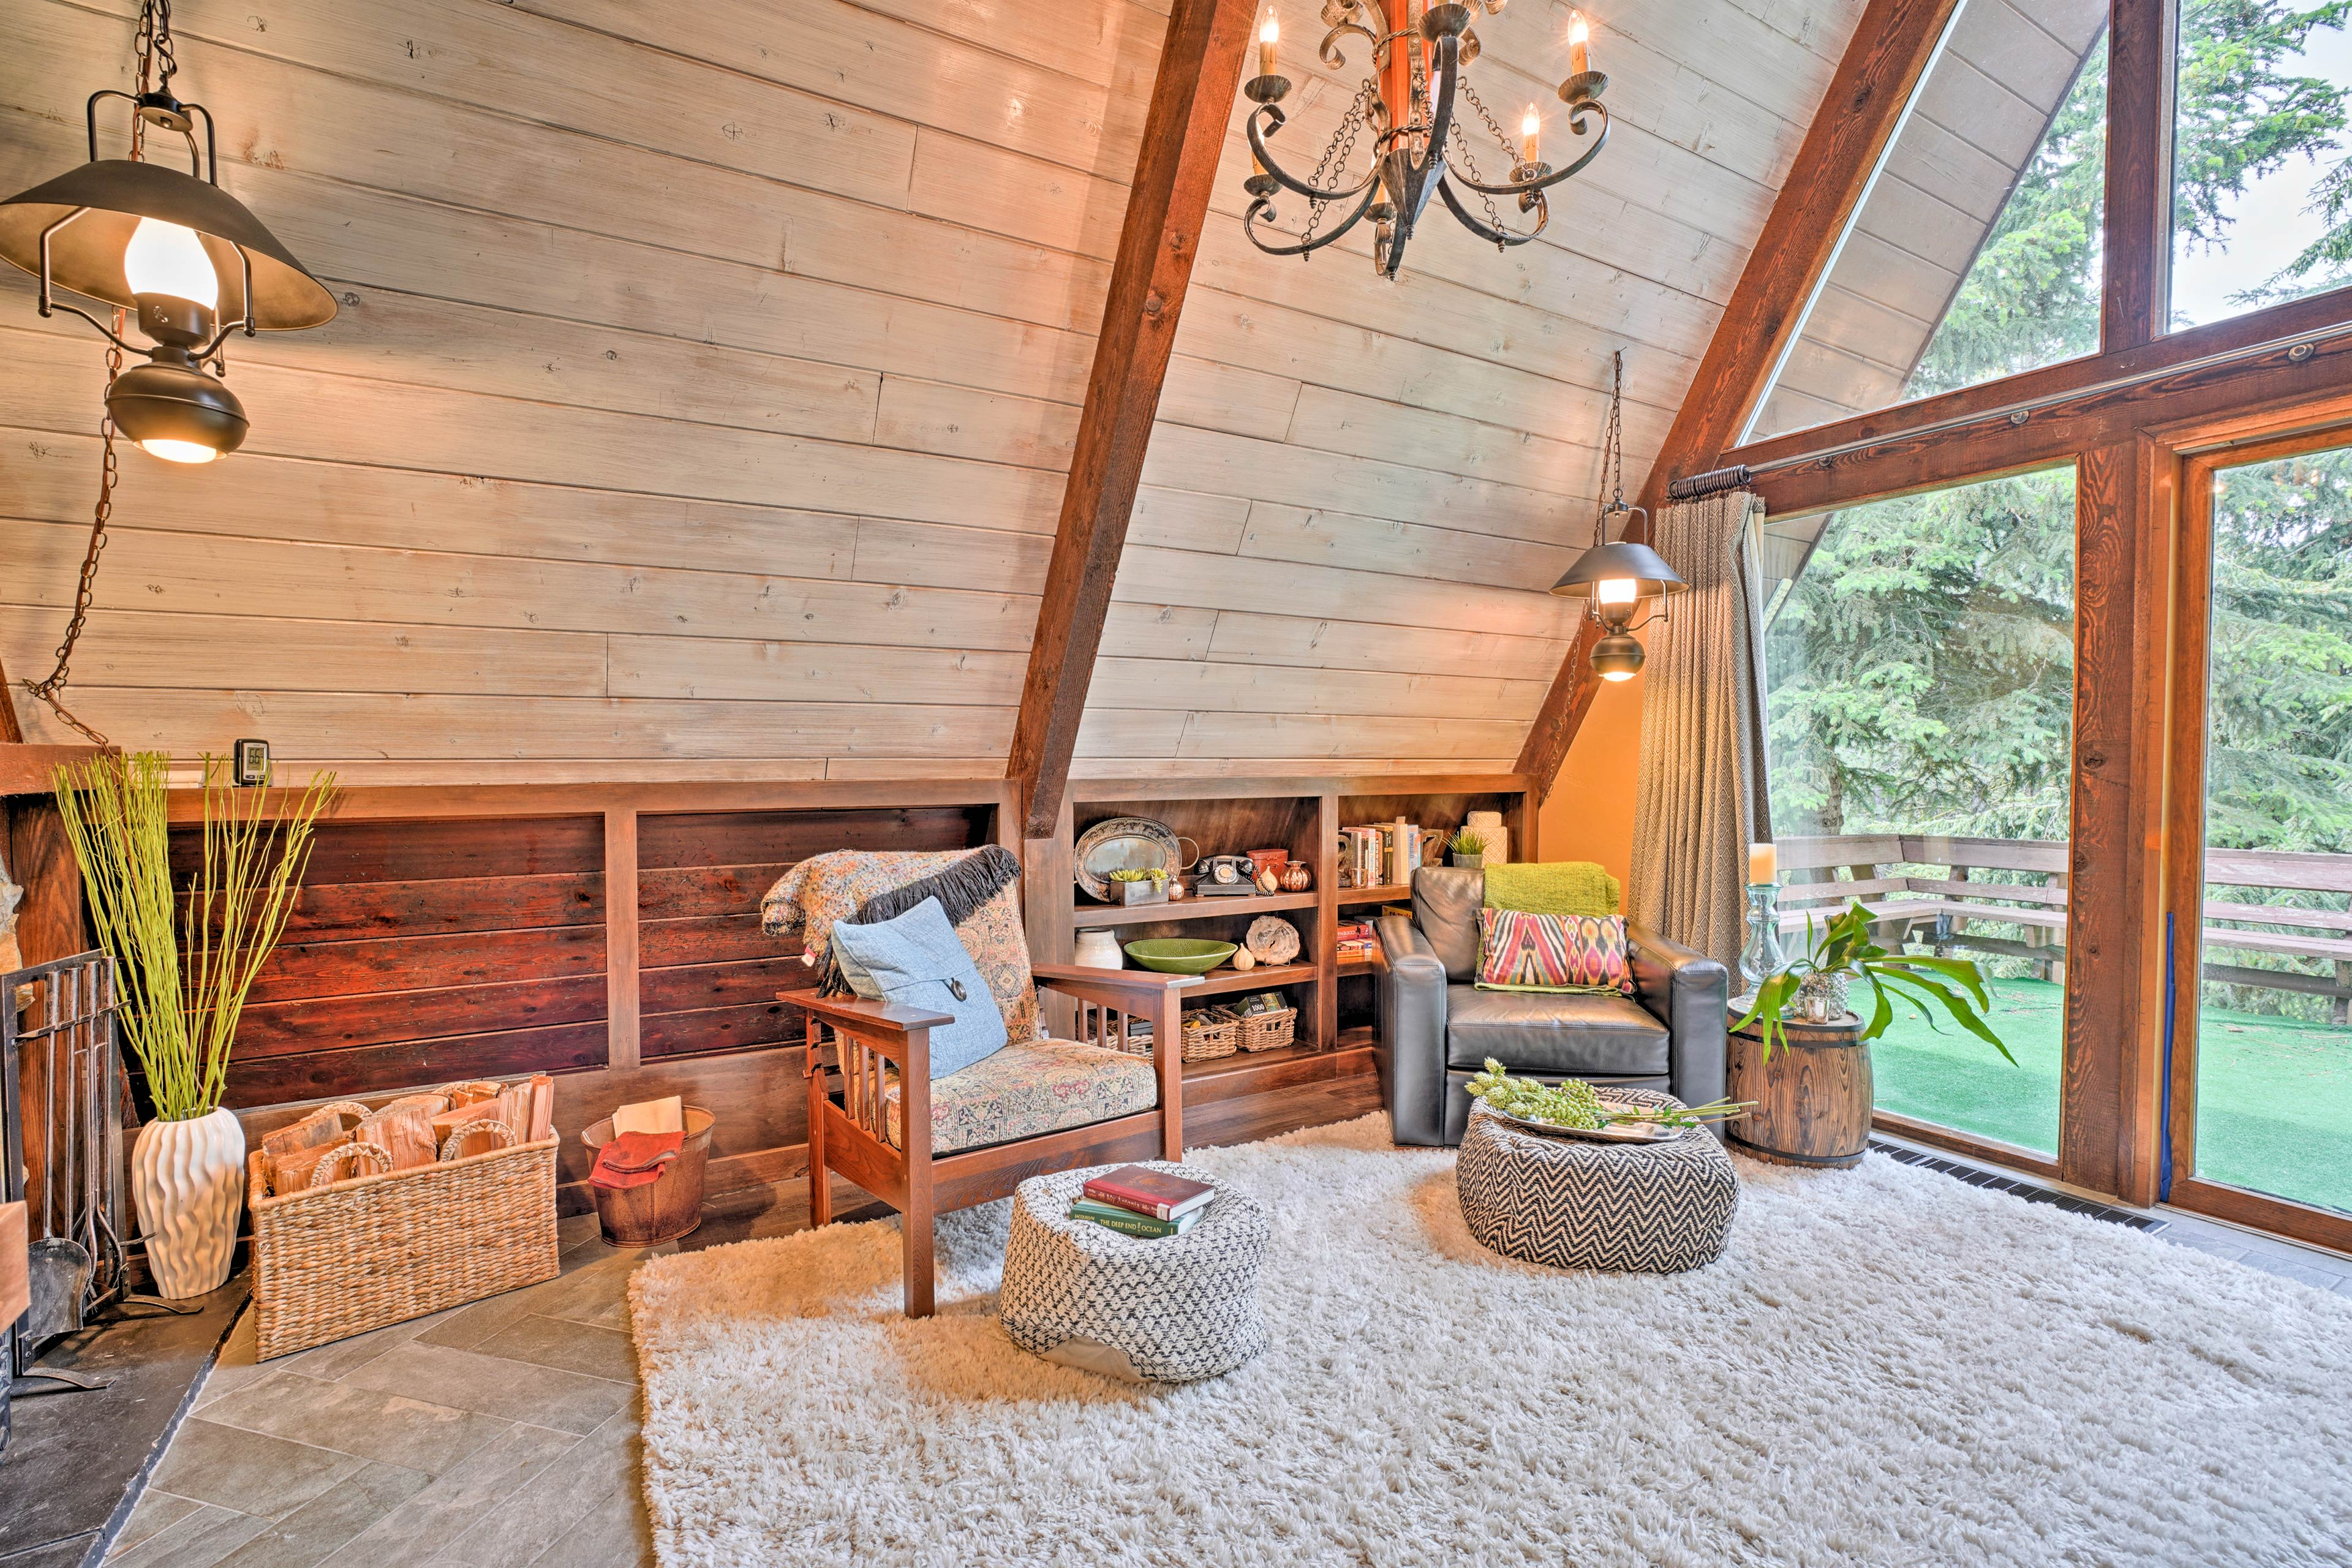 Take a load off in this sunlit open-concept living room.